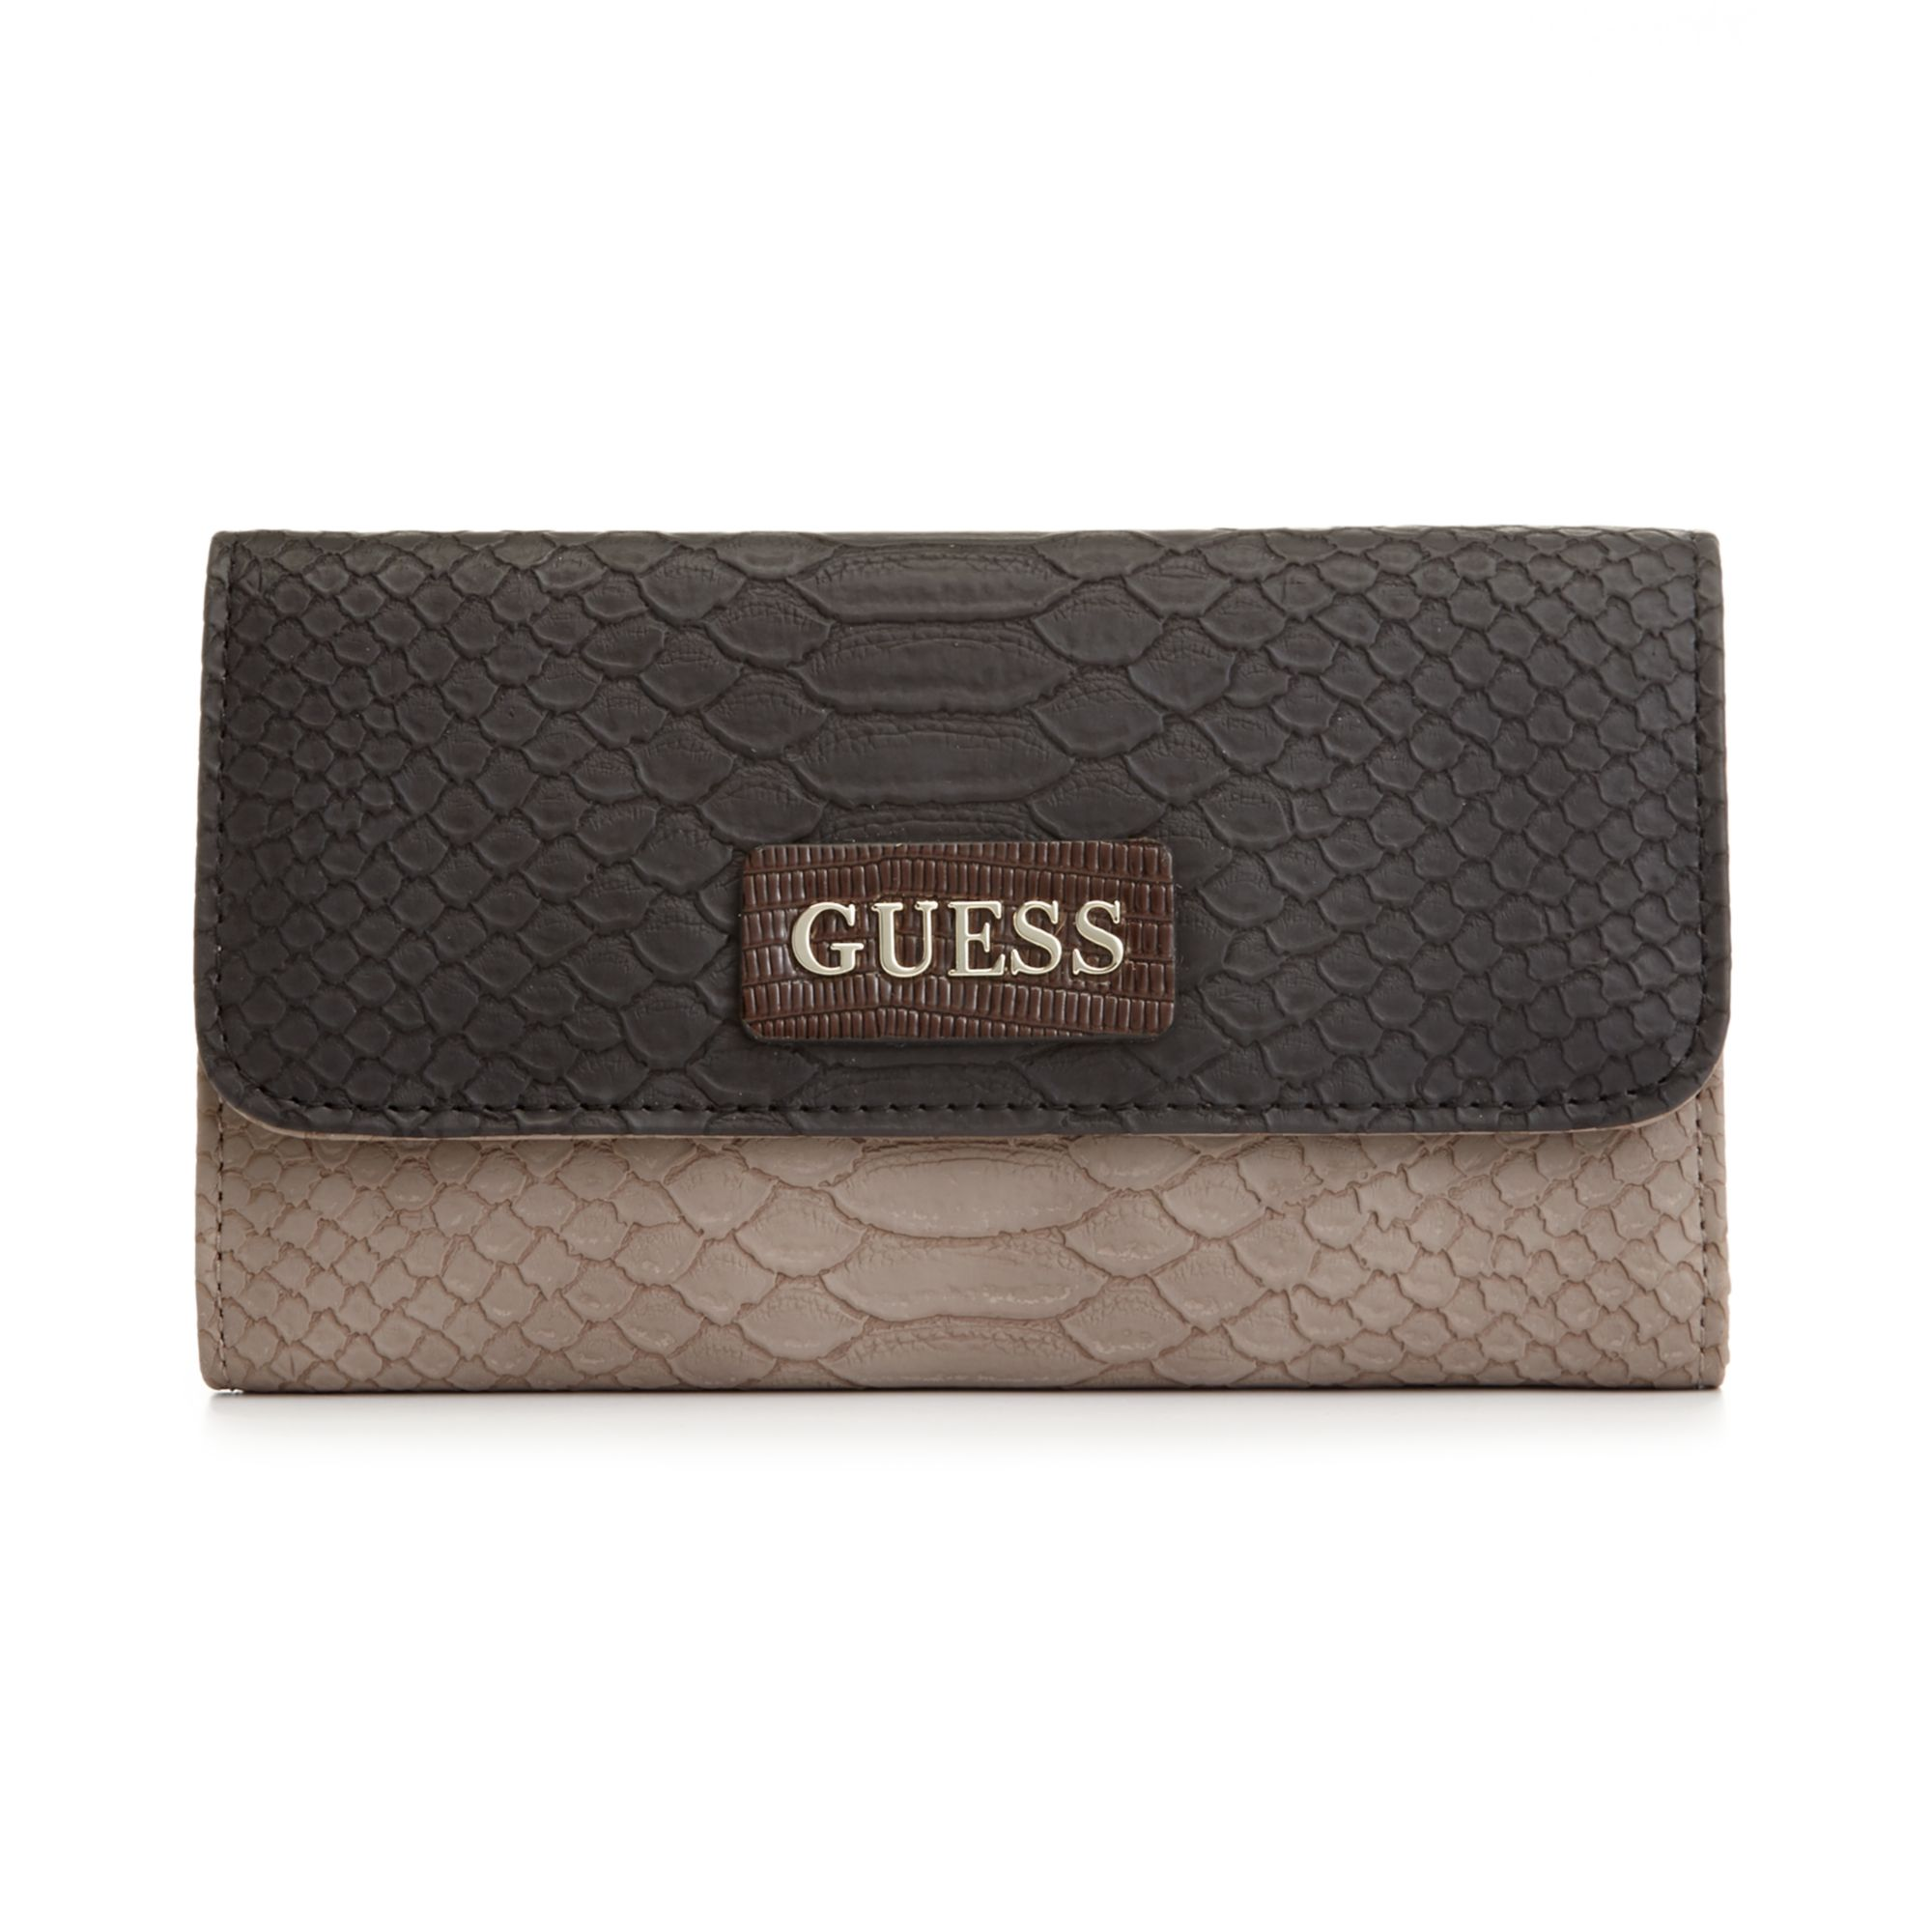 64fcbf95507 Guess Clutch Wallet - Best Photo Wallet Justiceforkenny.Org